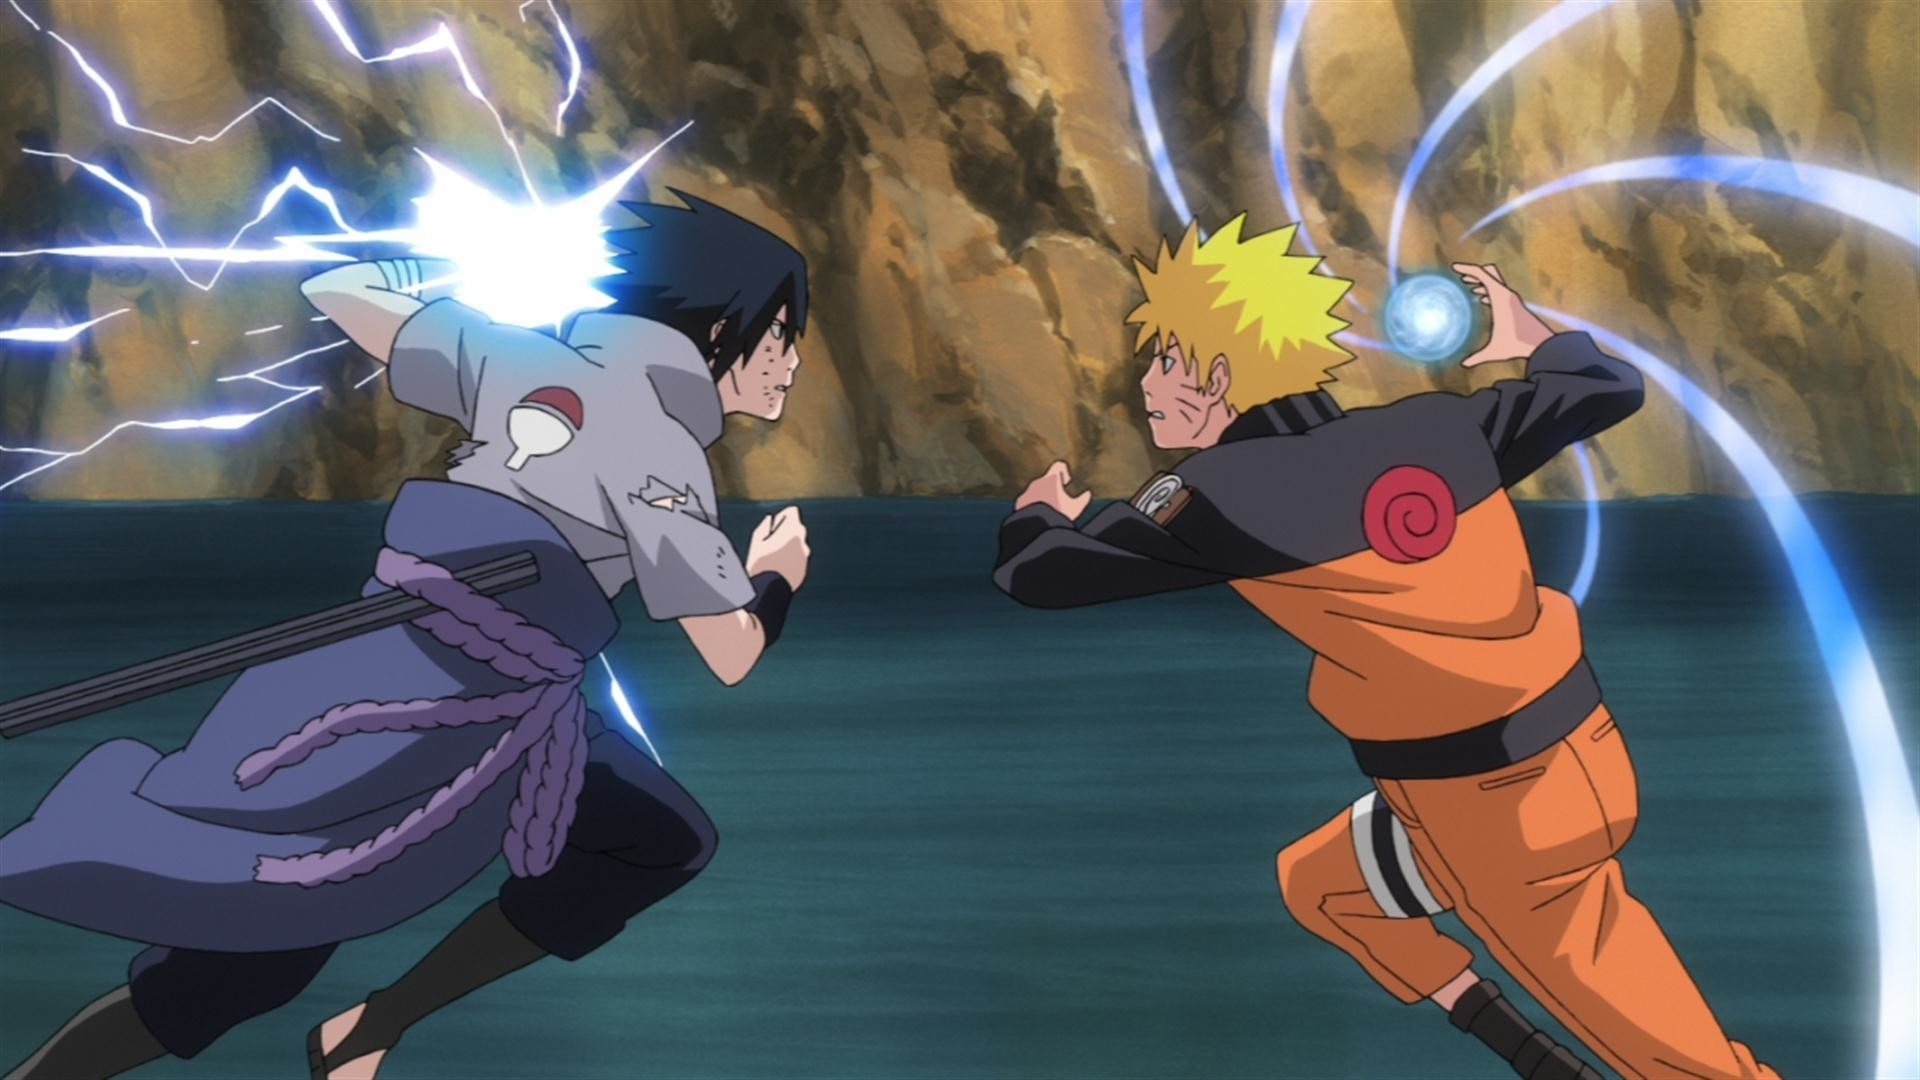 naruto vs sasuke hd wallpaper (68+ images)